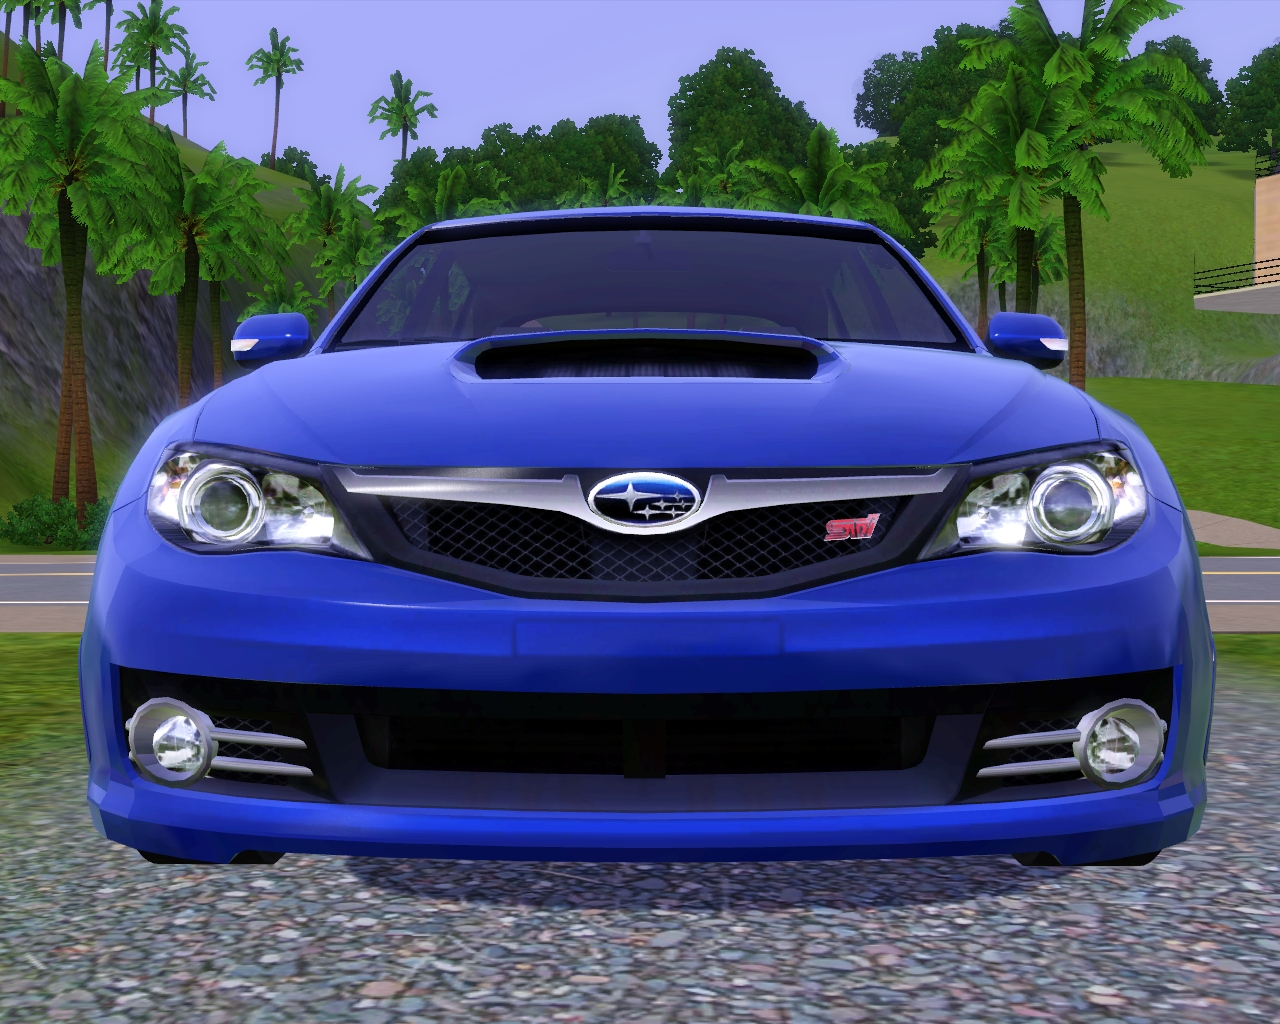 my sims 3 blog 2008 subaru impreza wrx sti by fresh prince. Black Bedroom Furniture Sets. Home Design Ideas